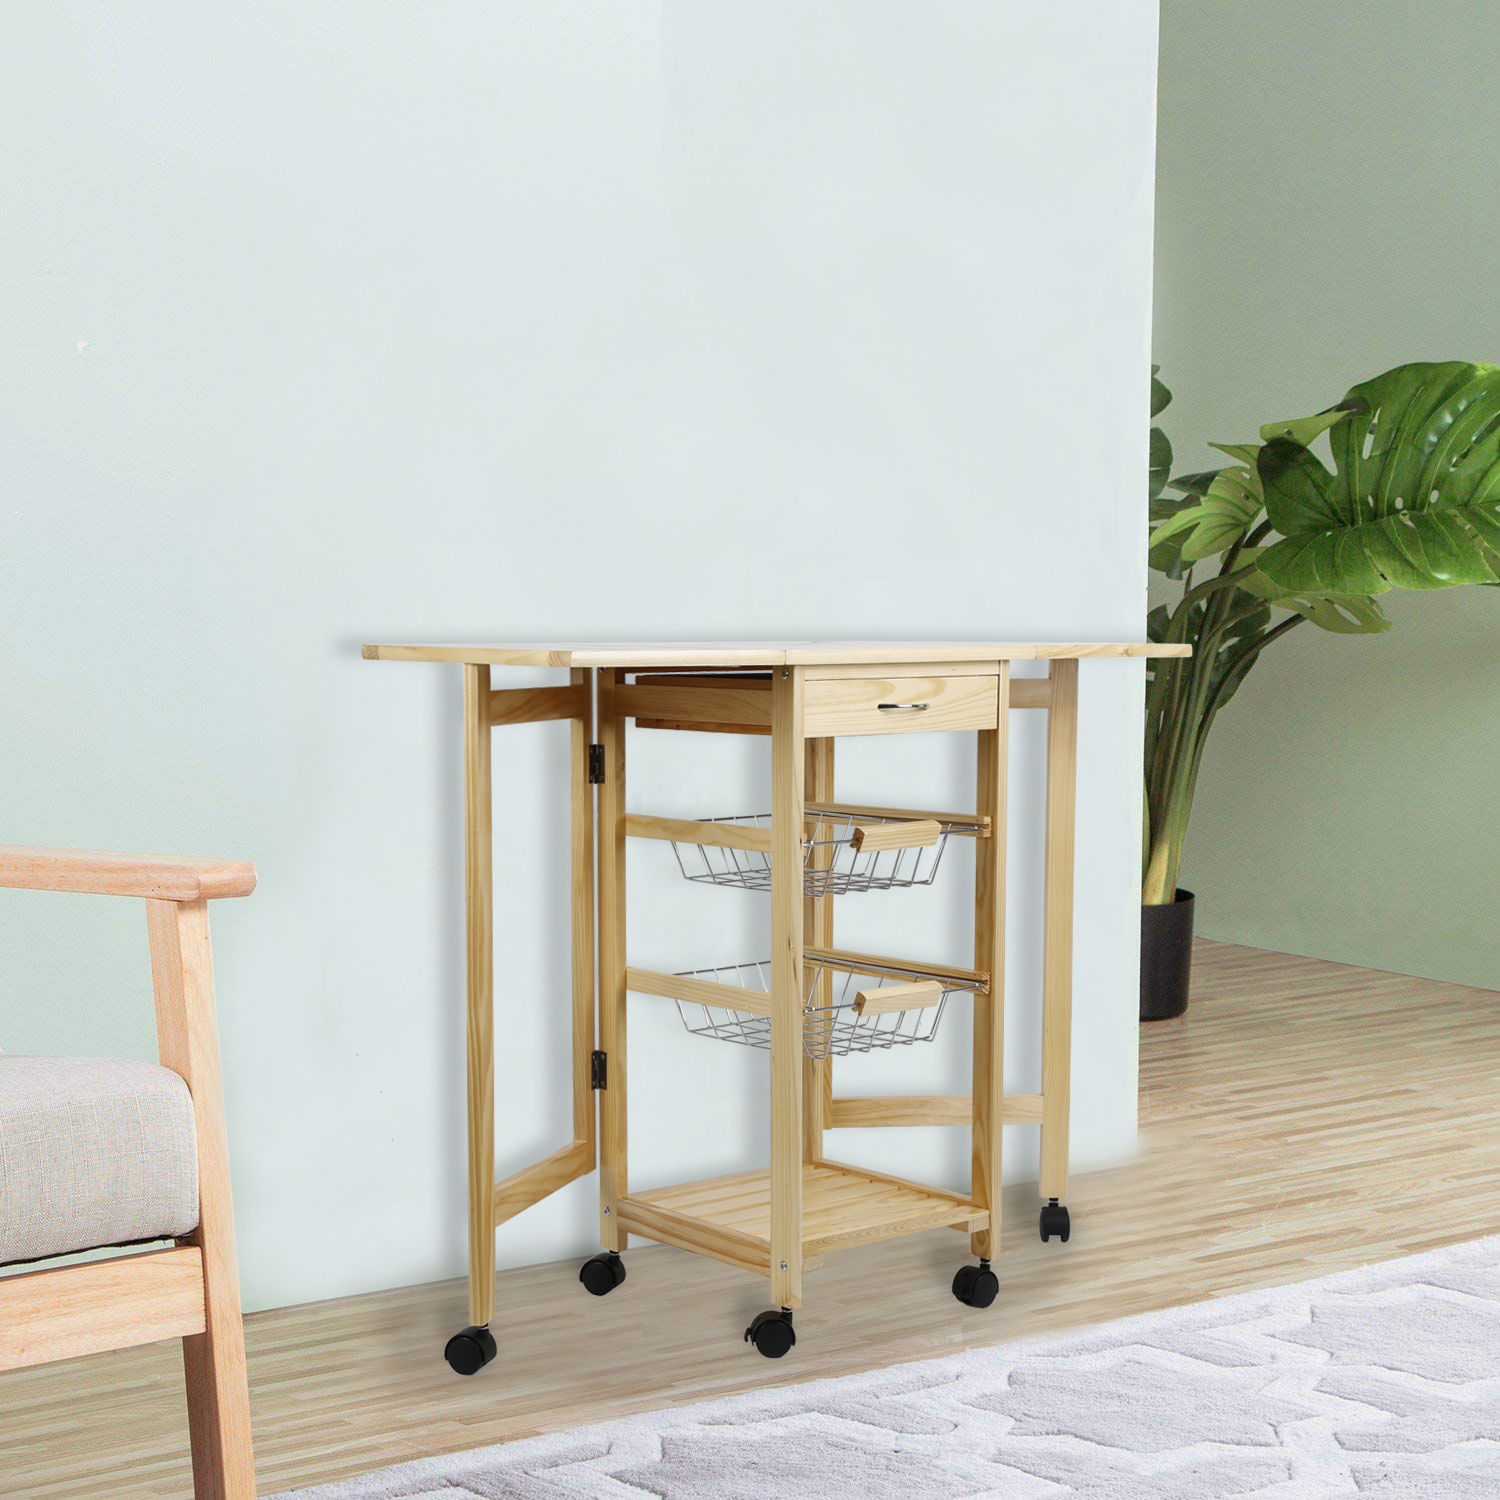 Kitchen Trolley Cart Dining Shelf Island Kitchen Storage Rack 3 Layer Fridge Side Shelf  With Wheels Storage Drawers HWC